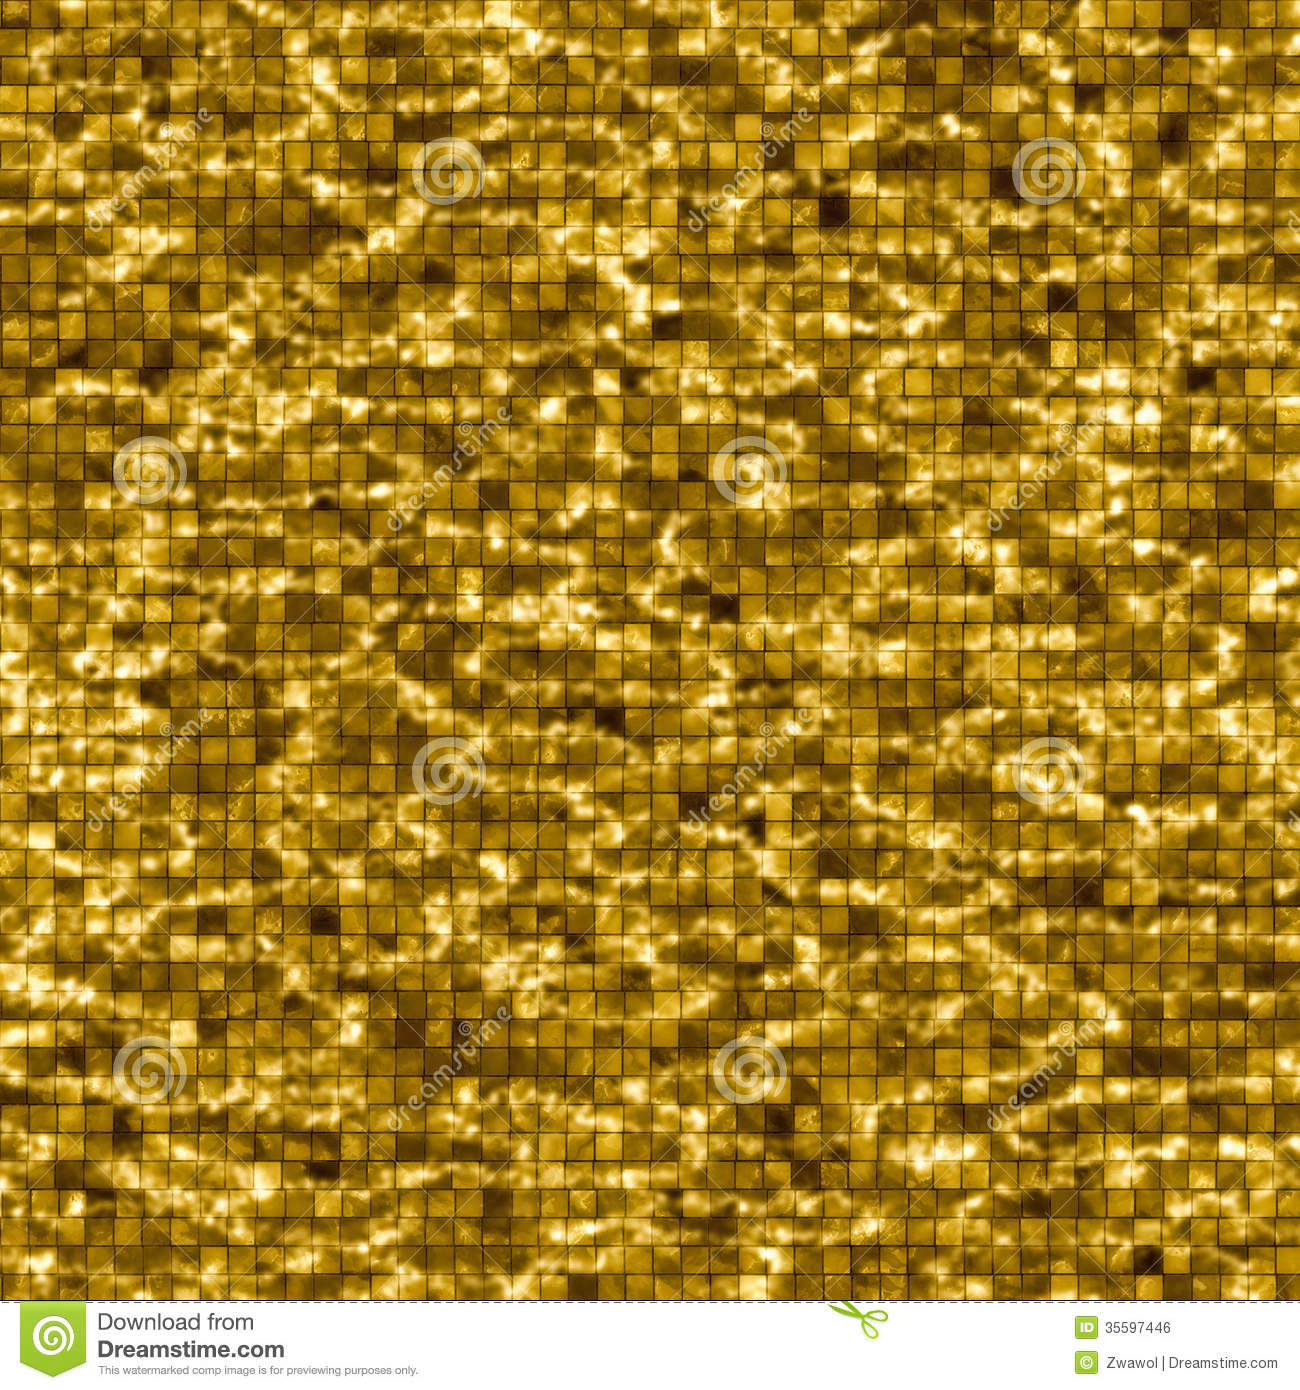 3d Water Drop Wallpaper Gold Pool Water Background Royalty Free Stock Image